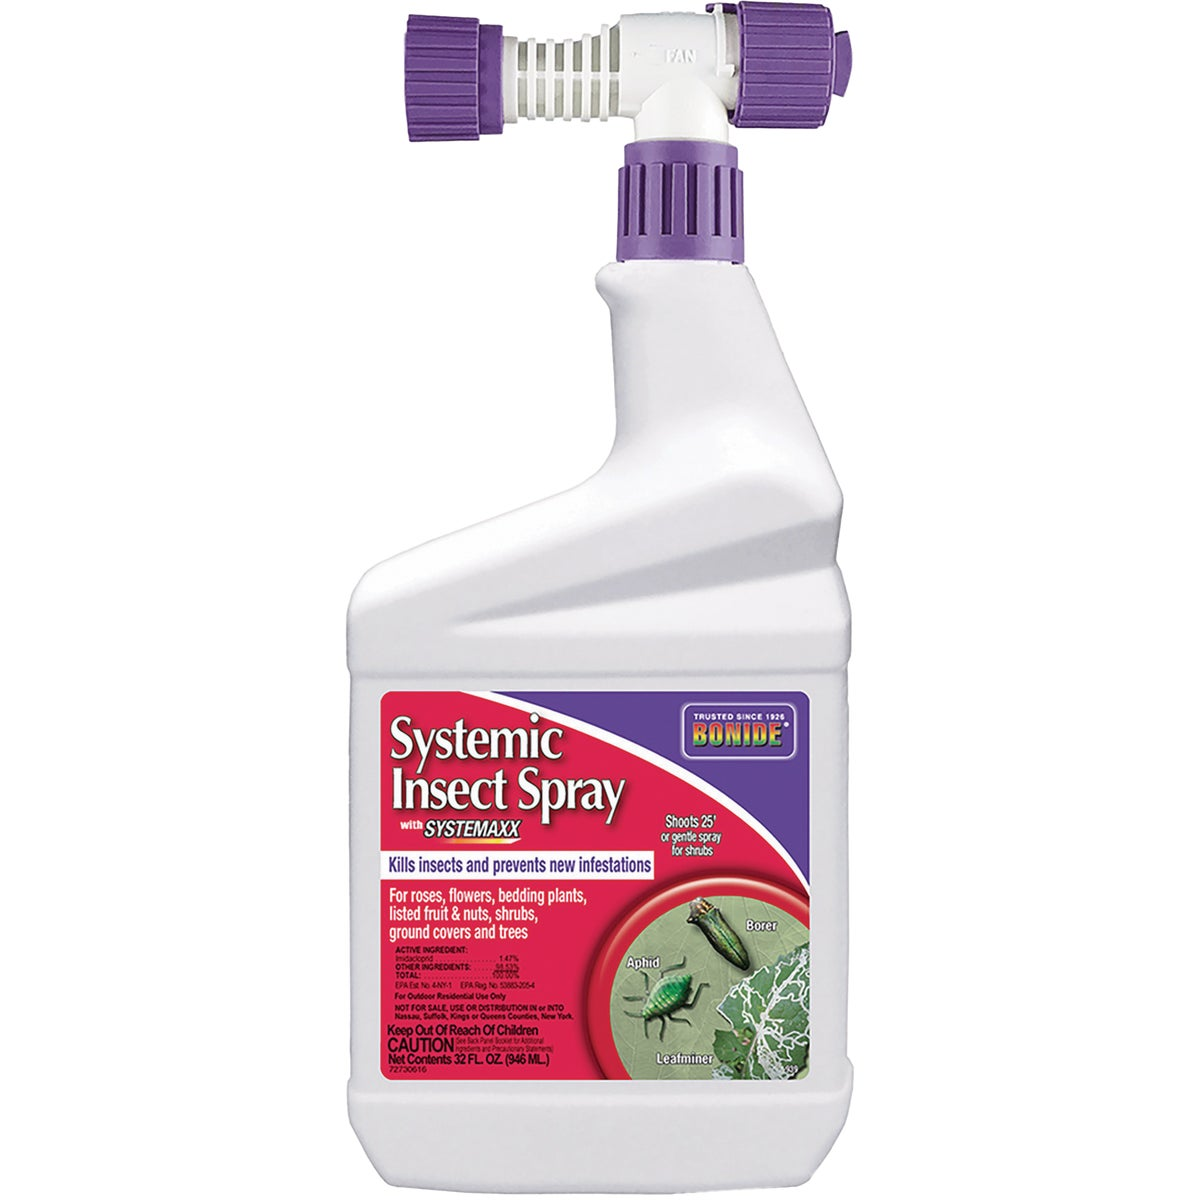 QT SYS INSECT KILLER